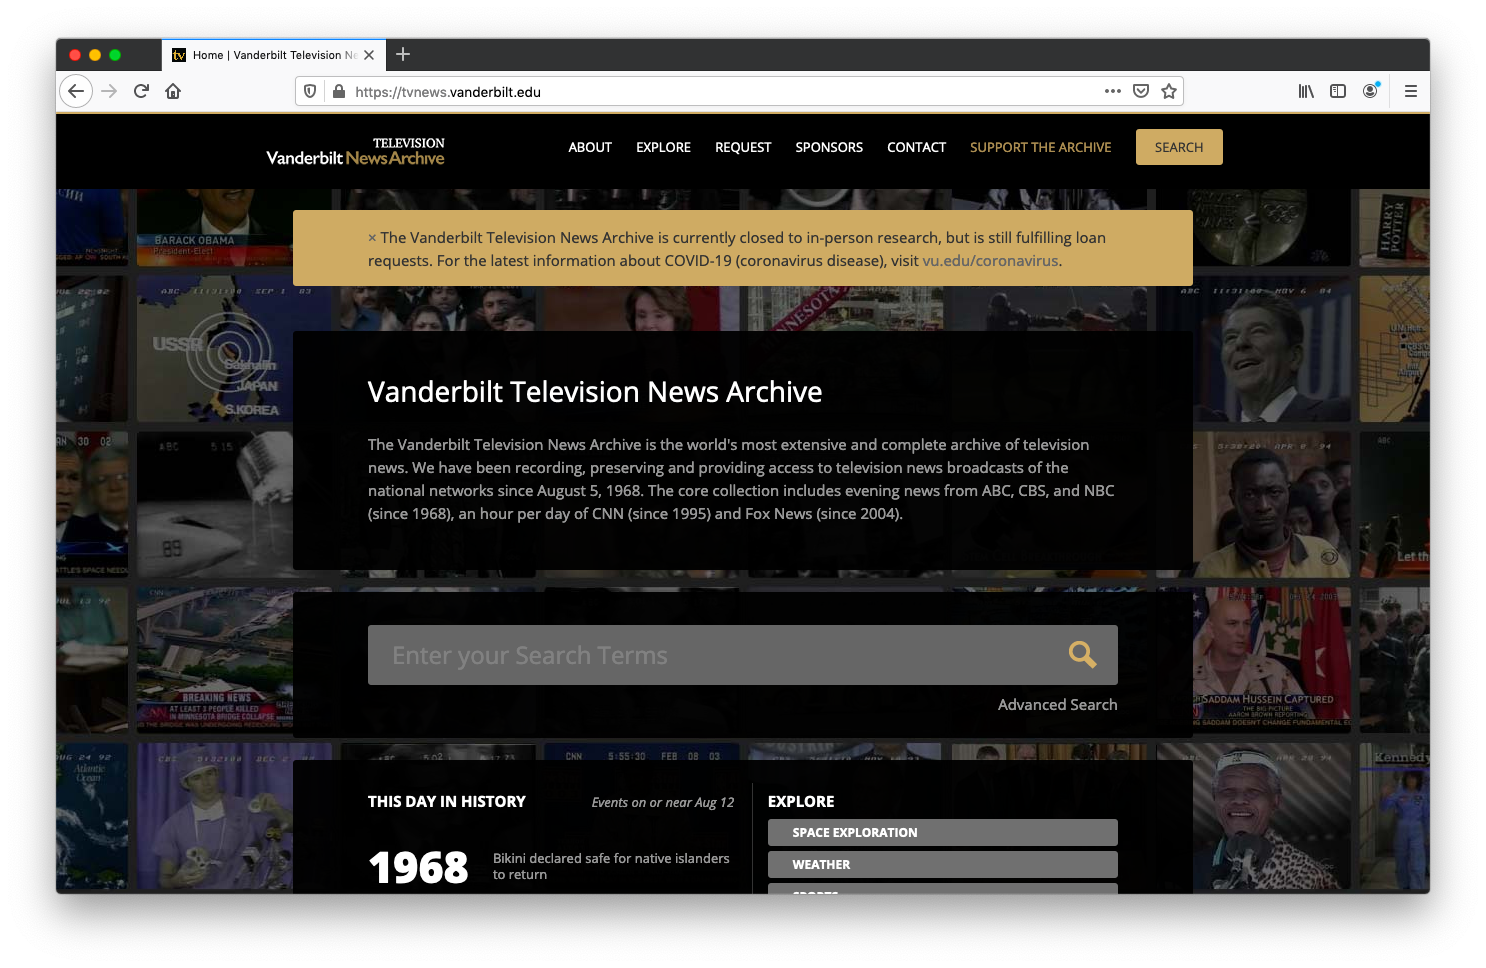 The home page of VTNA